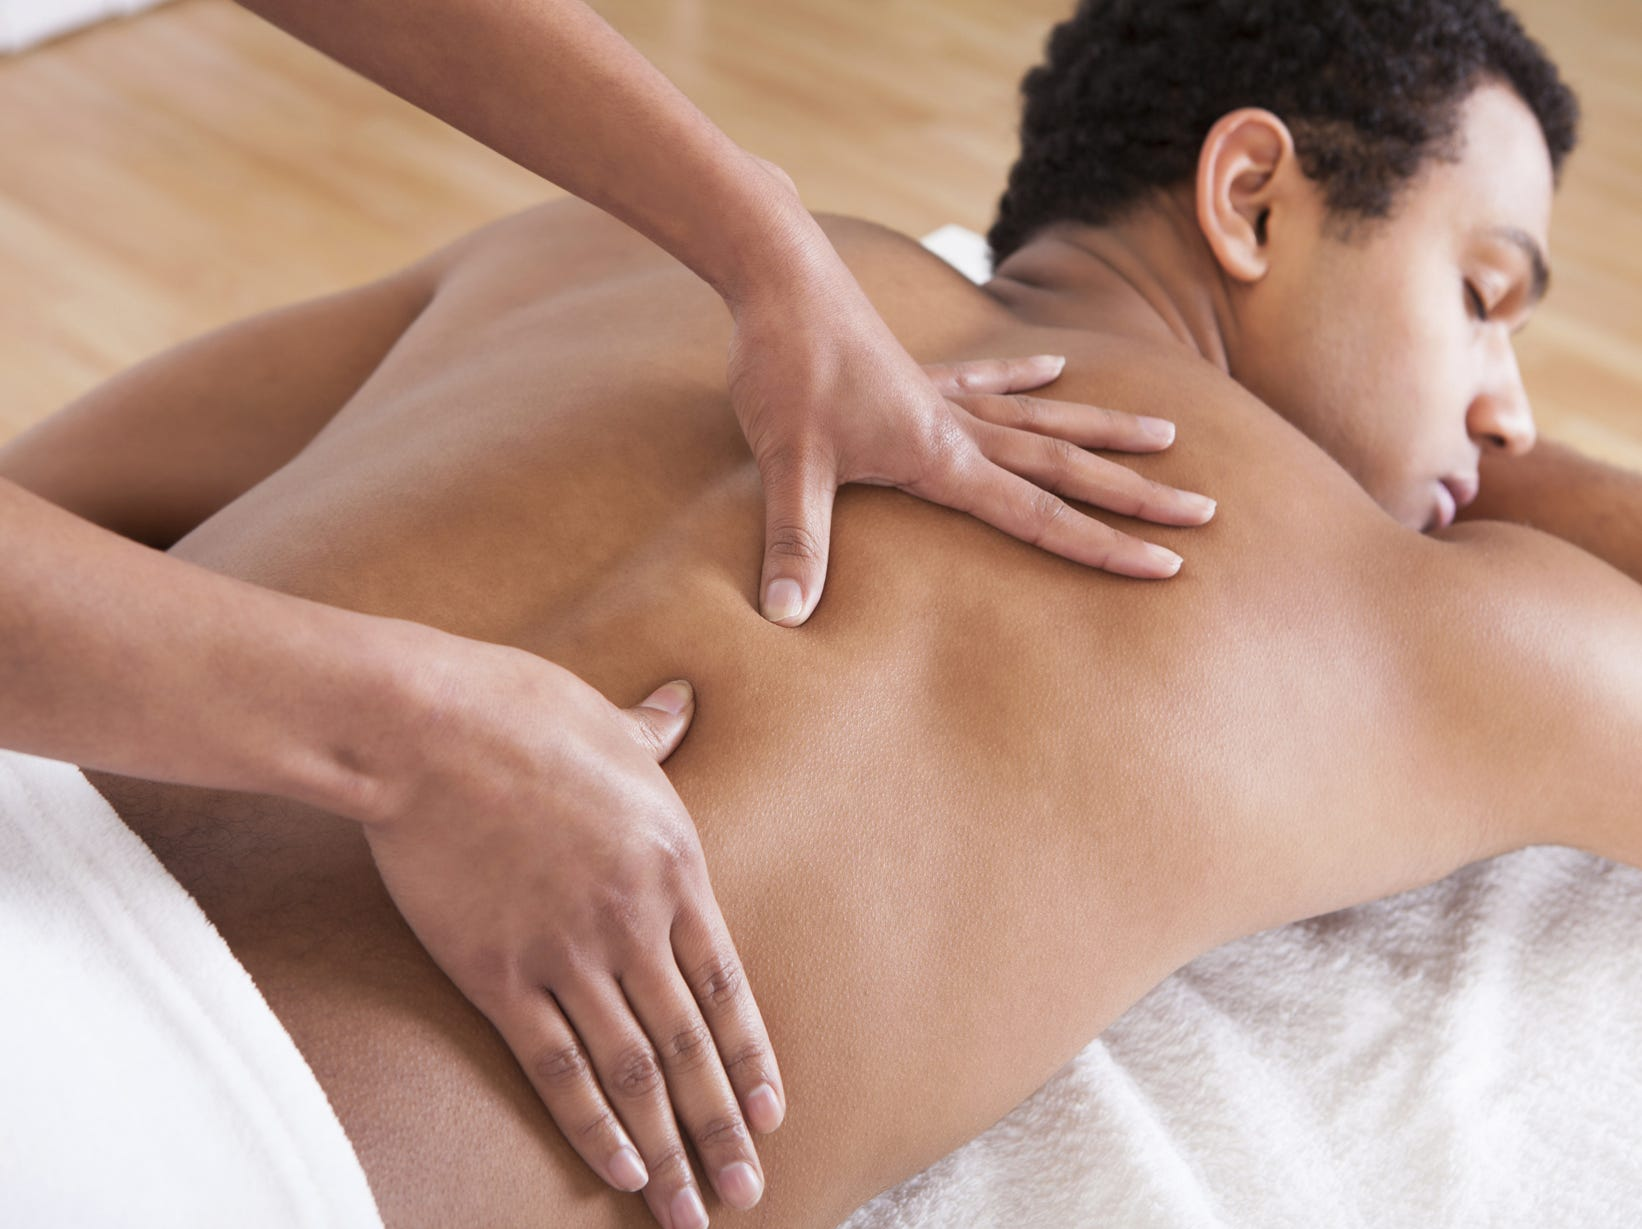 Massage away holiday stress.